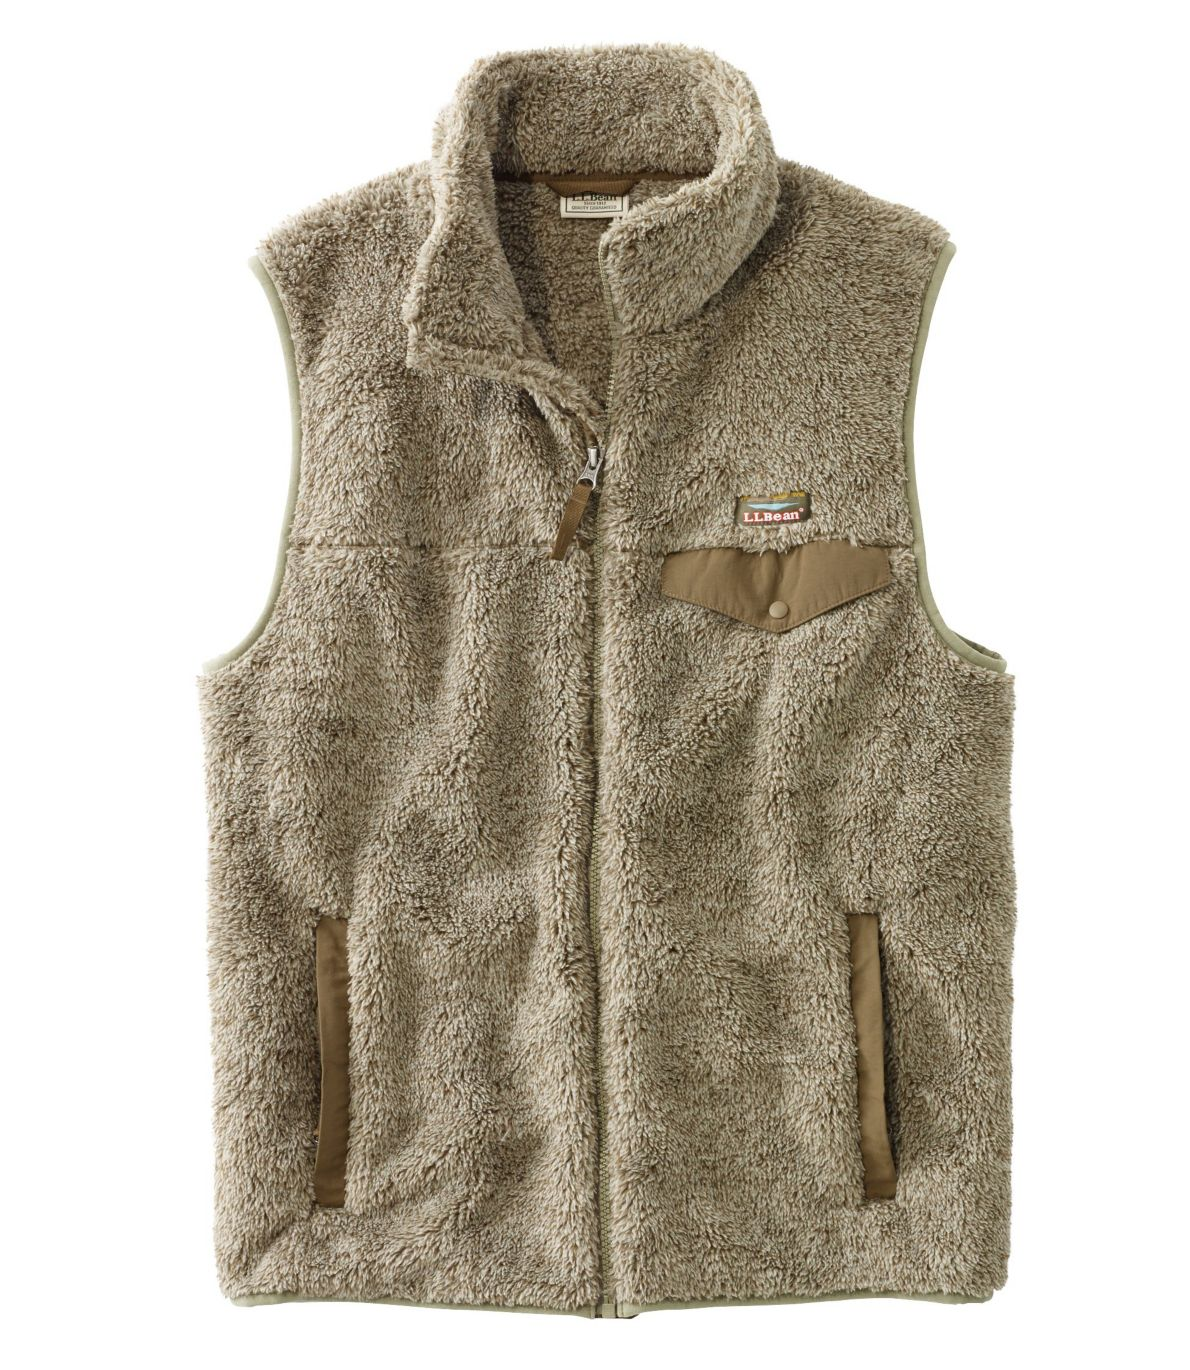 Men's L.L.Bean Hi-Pile Fleece Vest